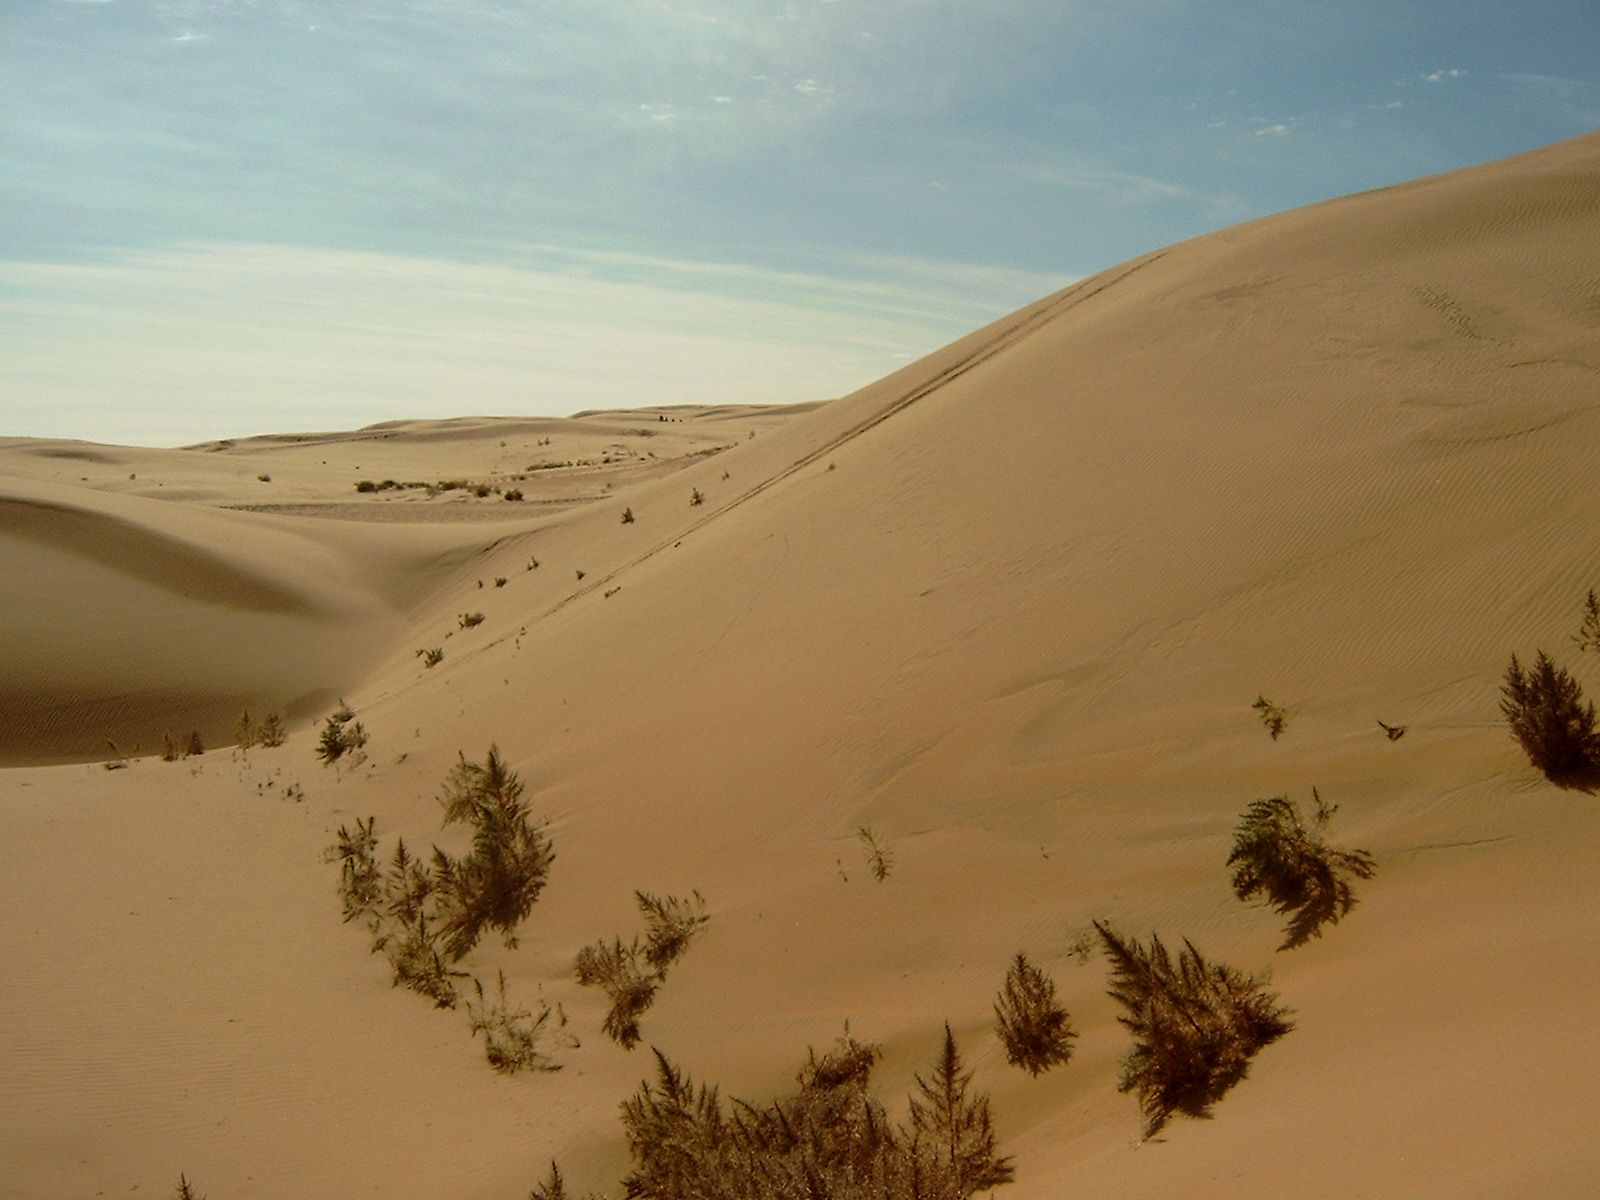 File:Gobi Desert.jpg - Wikipedia, the free encyclopedia